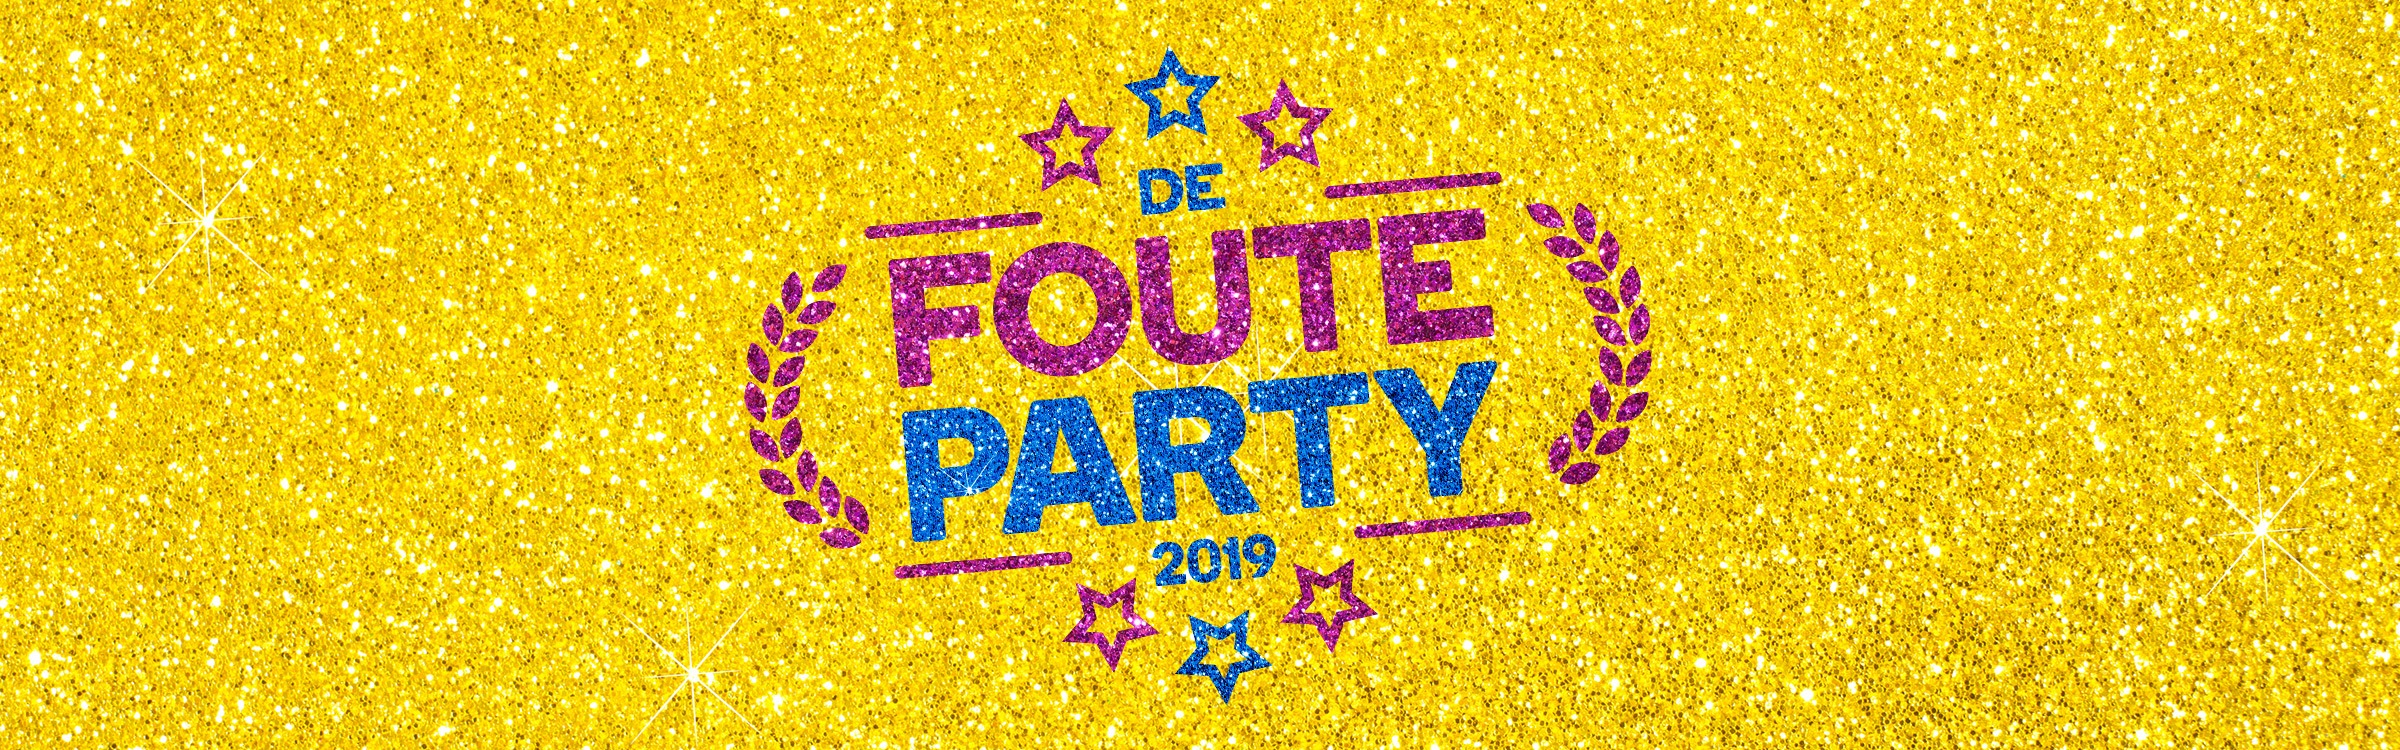 Qmusic actionheader fouteparty2019 sales